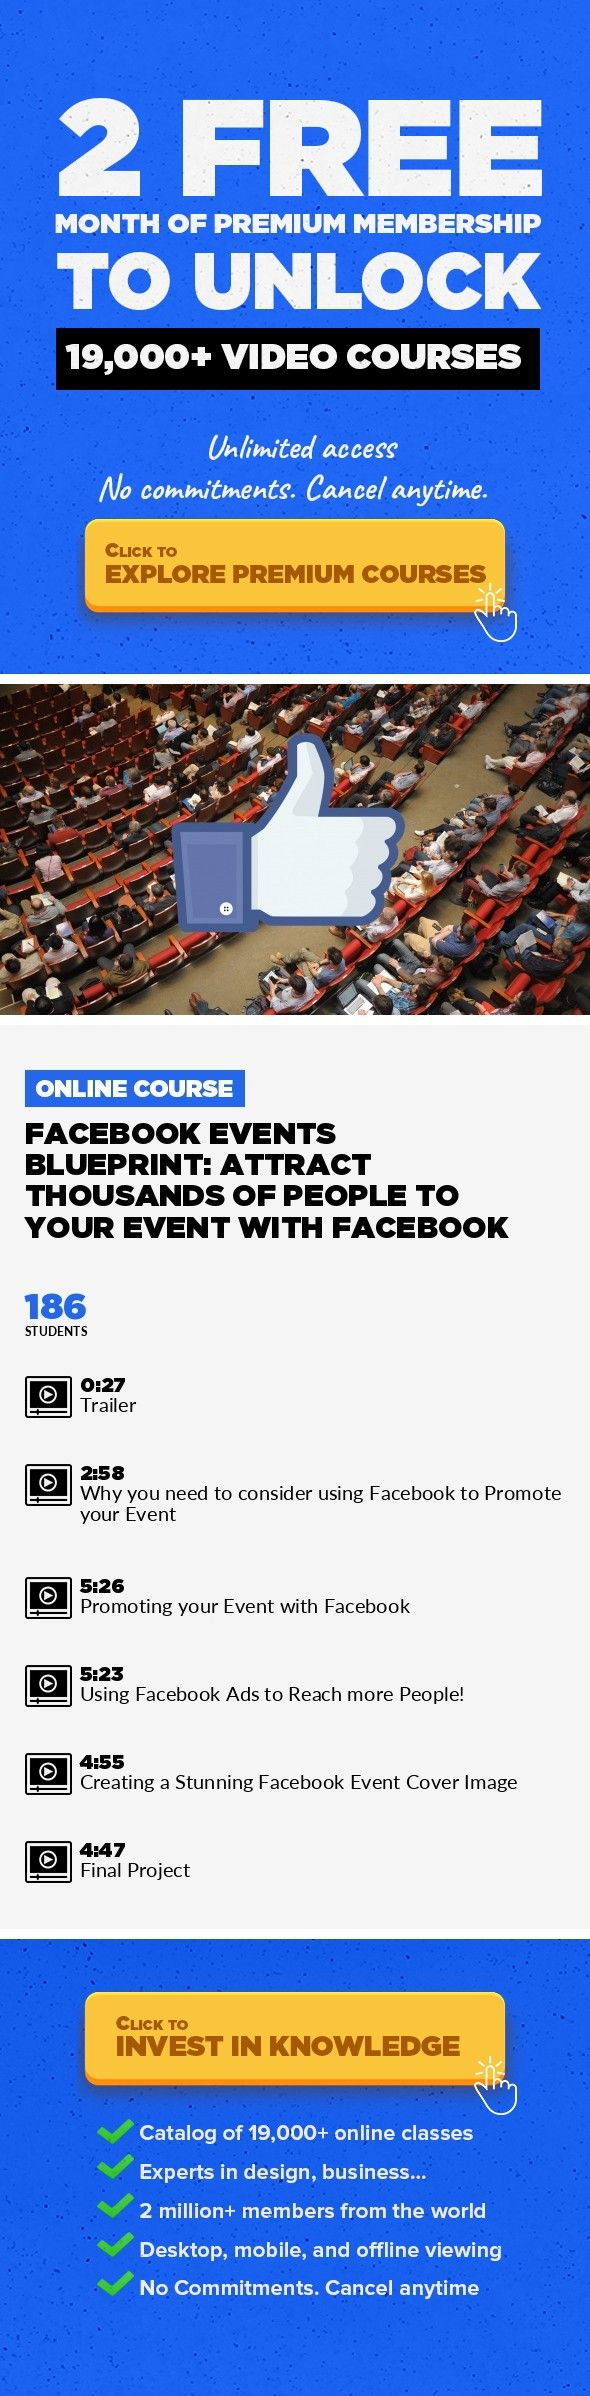 Facebook events blueprint attract thousands of people to your event facebook events blueprint attract thousands of people to your event with facebook marketing business facebook social media marketing facebook malvernweather Images